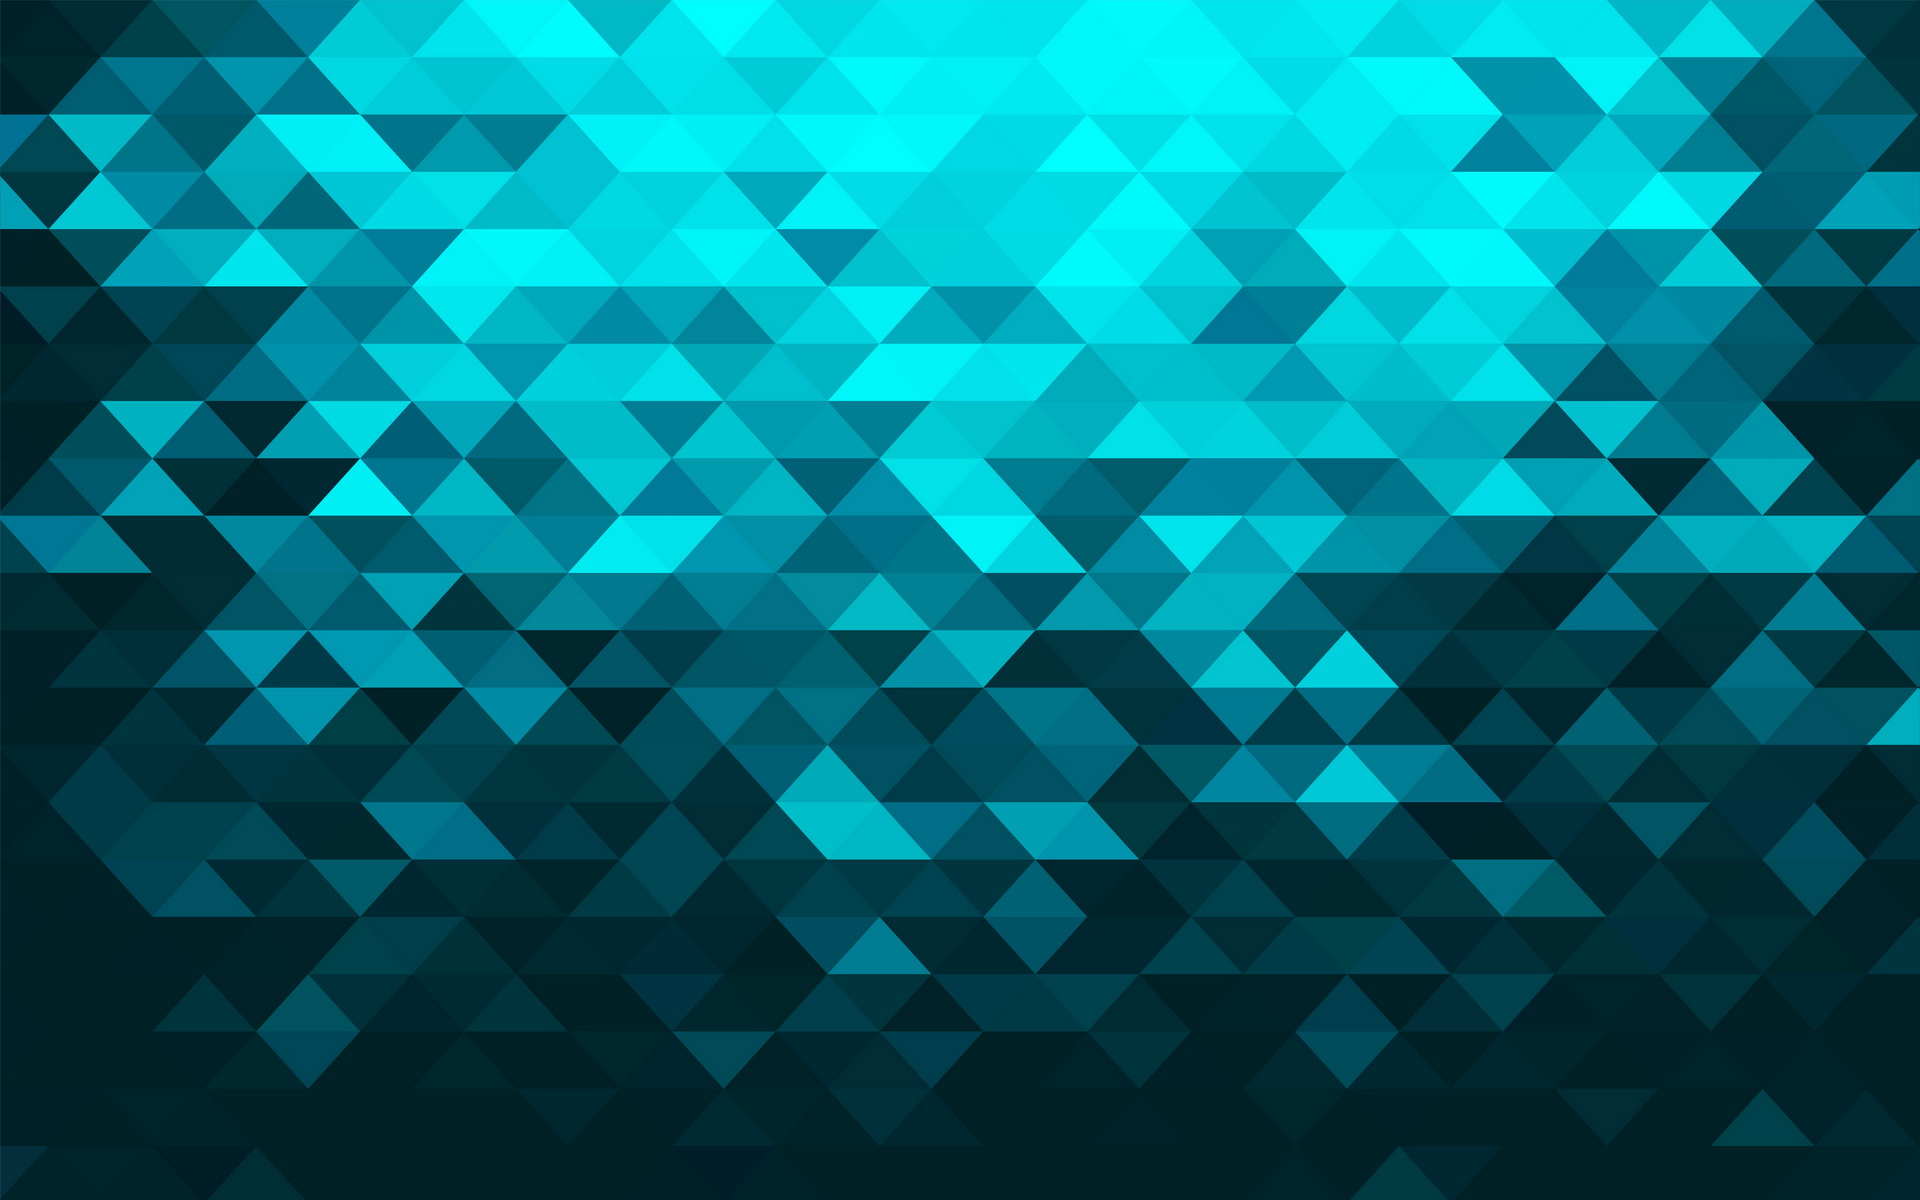 Black And Turquoise Wallpaper